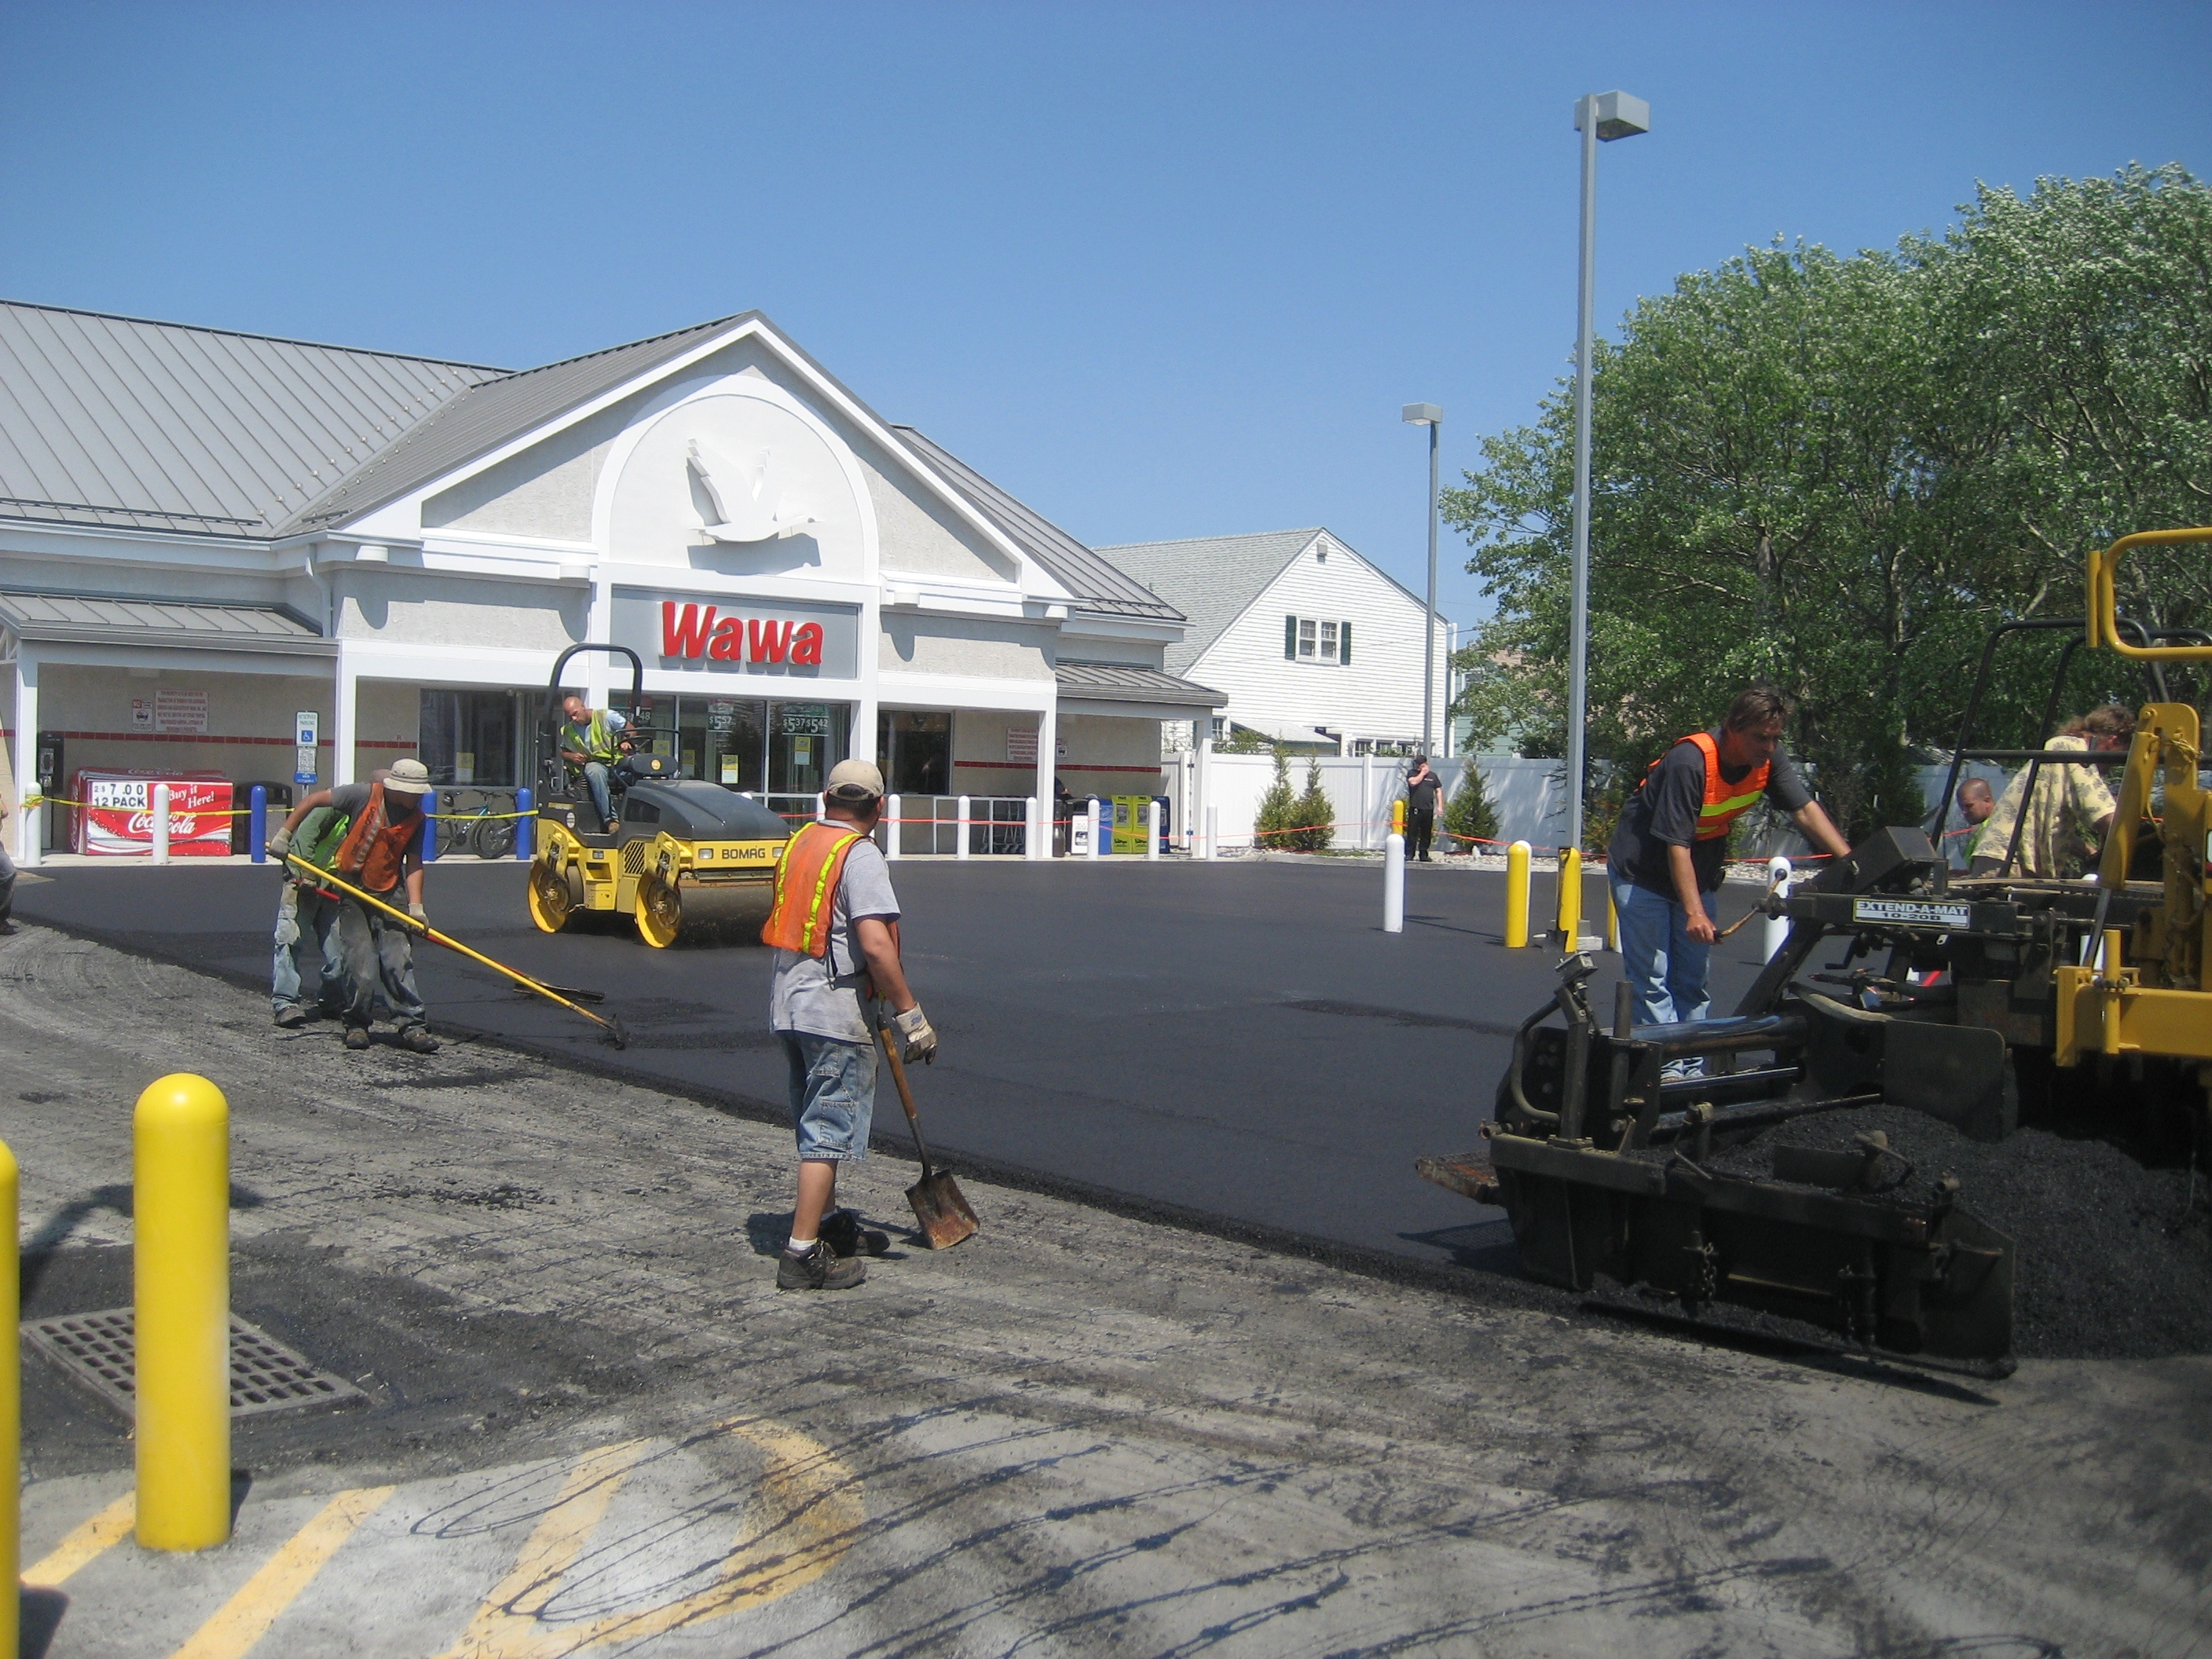 What's The Average Cost To Pave A Parking Lot In Delaware?. Consumer Report Cell Phone Plans. Free Websites Advertising Apache Stock Price. Disney World Transportation Map. Easiest Way To Send Money Internationally. Nj Manufacturers Home Insurance. How To Sign A Document New Smartphone Reviews. New Jersey Medical College Help Desk Services. Bioinformatics Graduate Programs